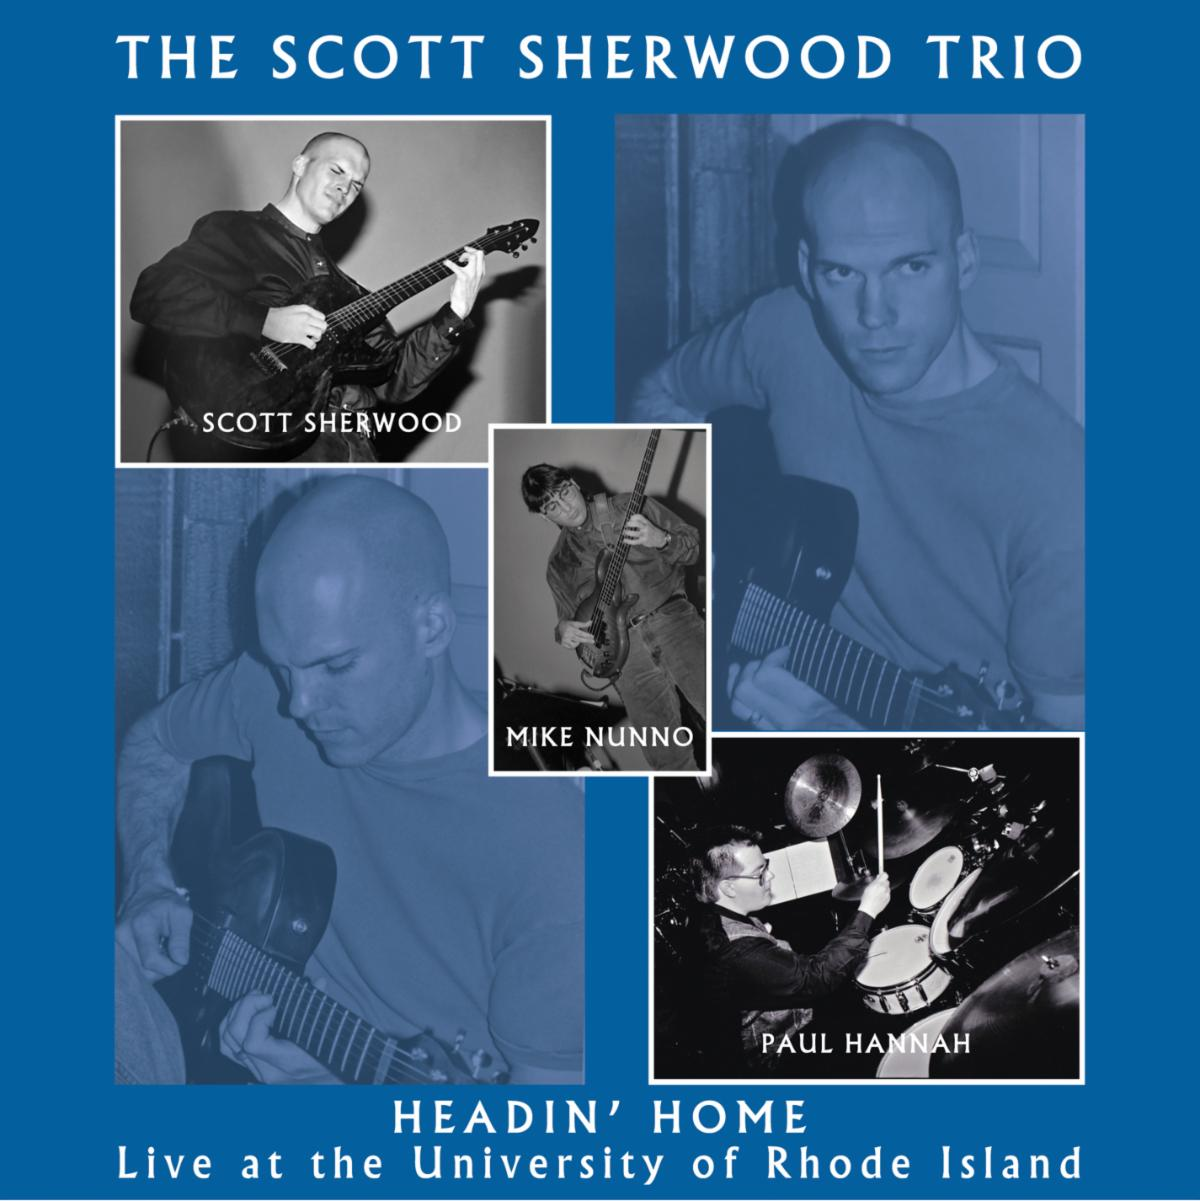 The Scott Sherwood Trio